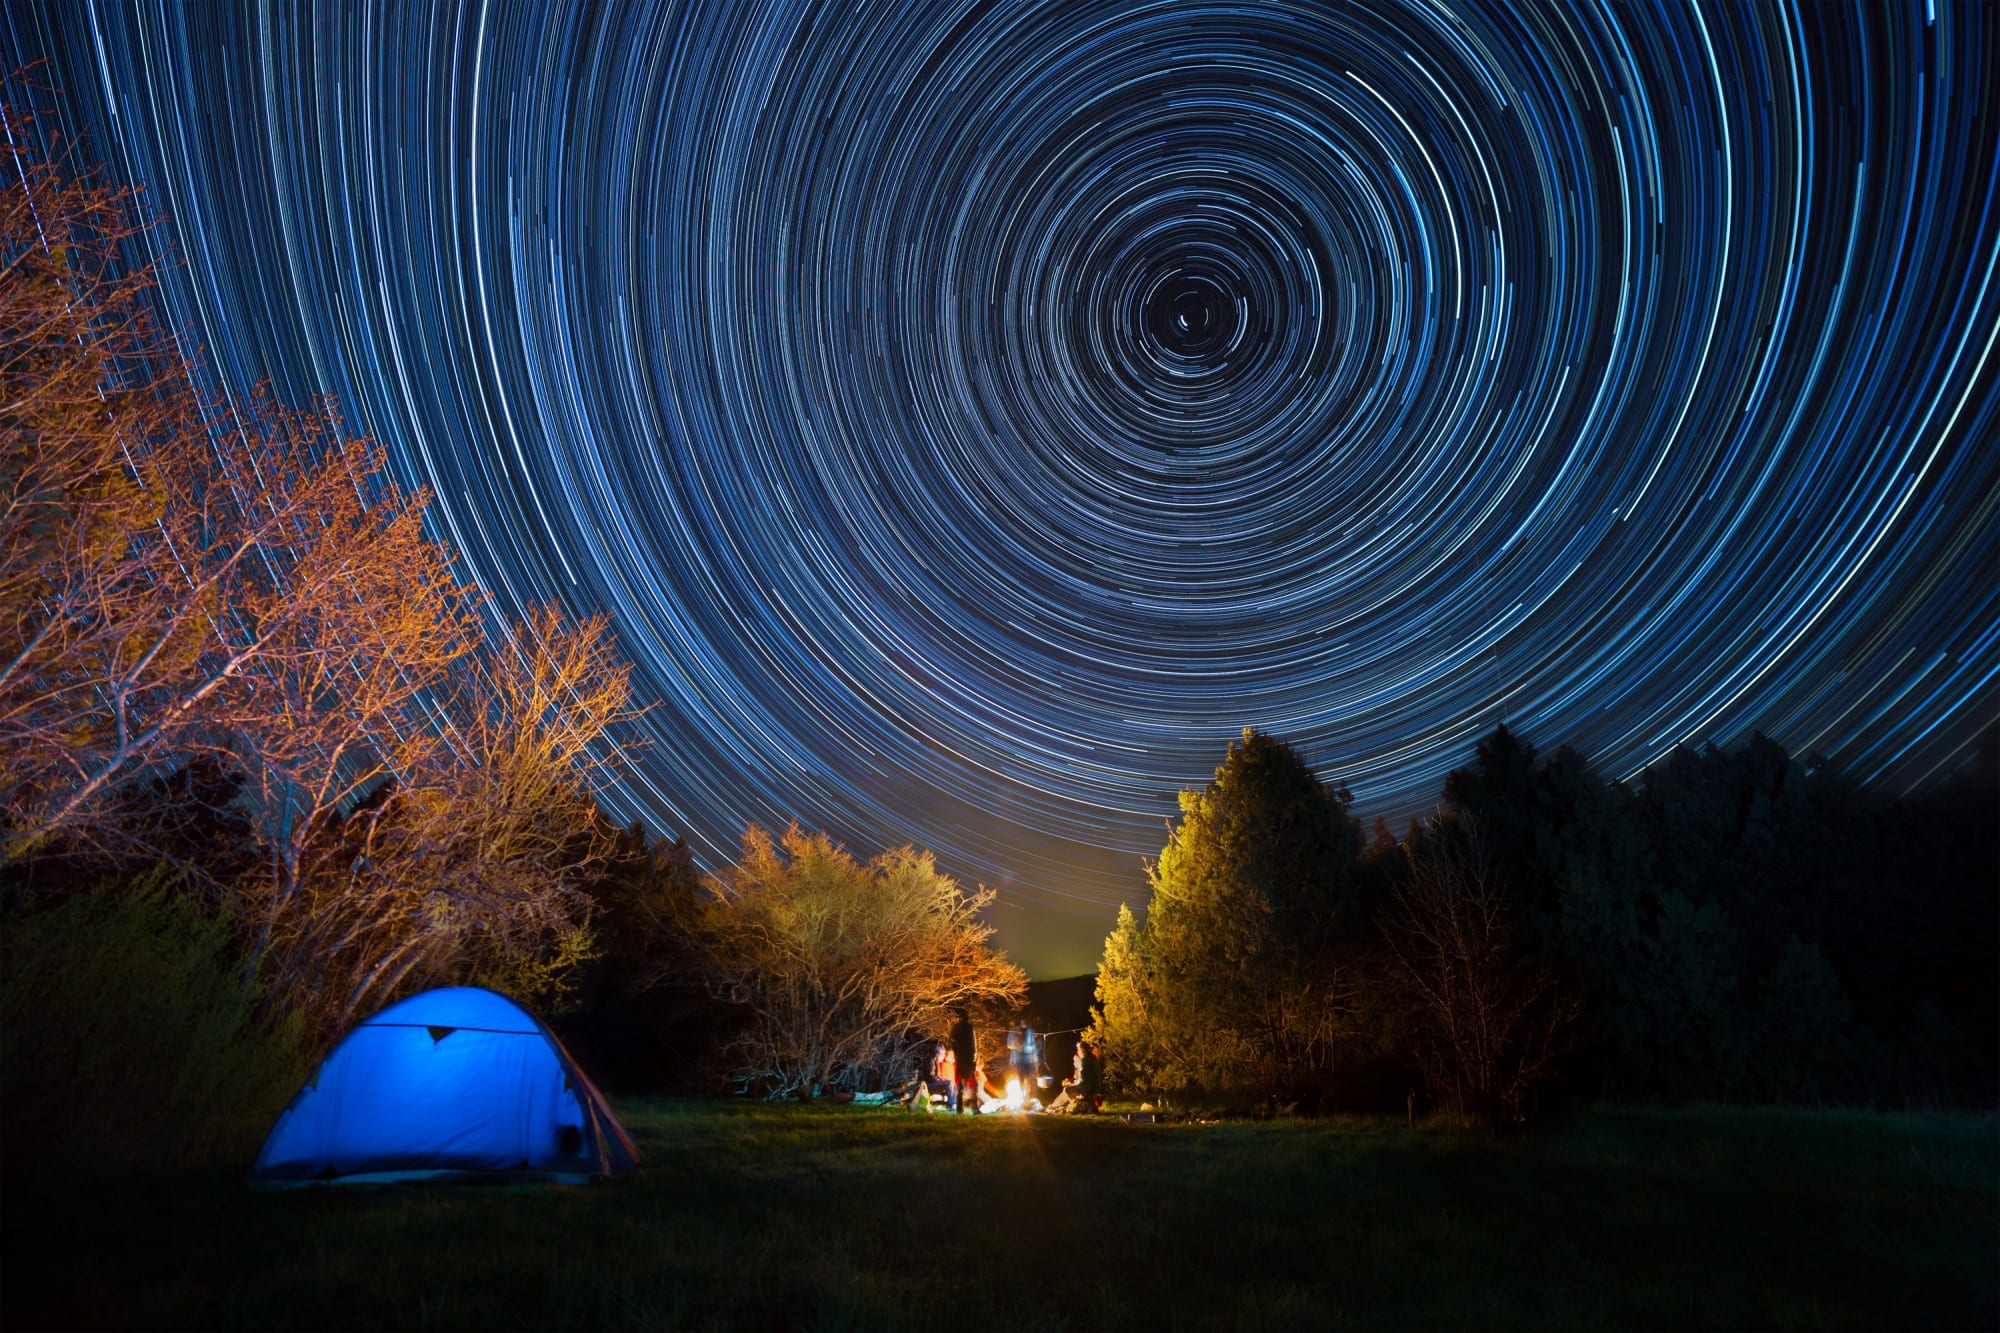 tent-against-the-night-sky-with-tracks-from-stars-l-e1434422208961